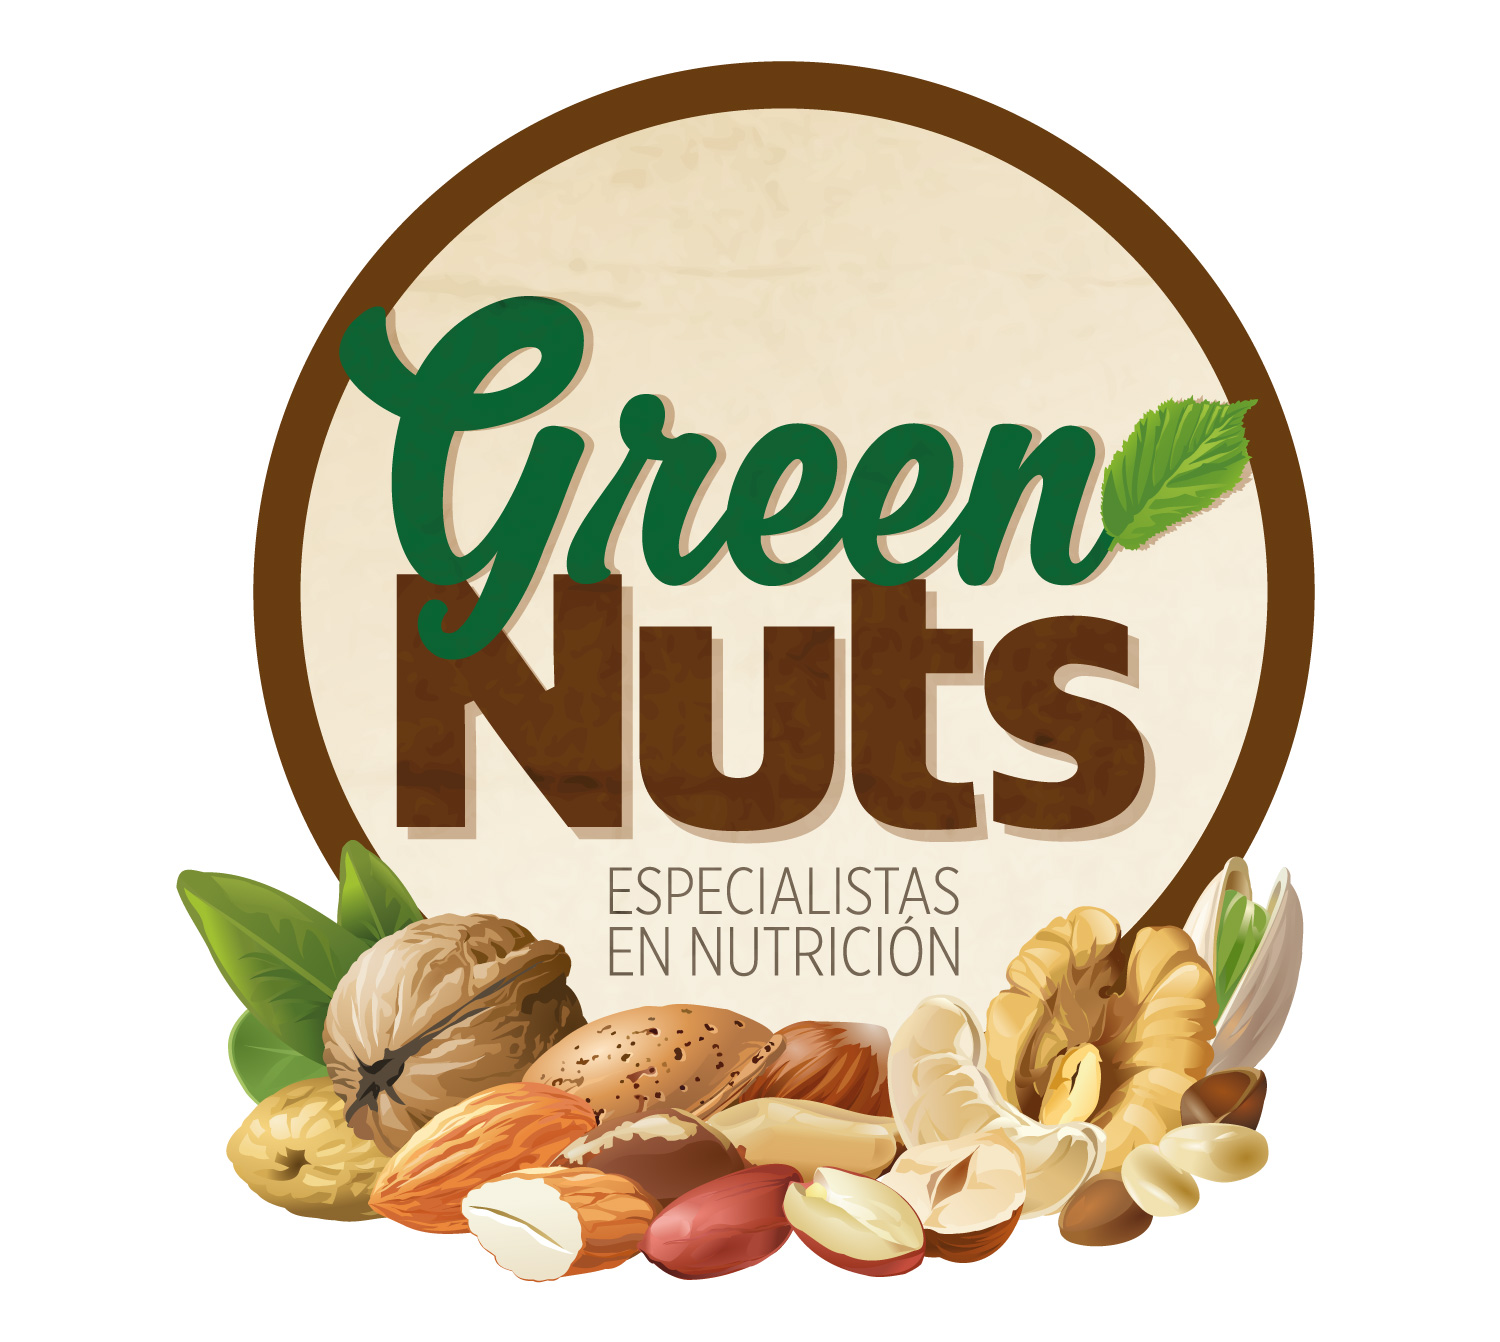 Green Nuts